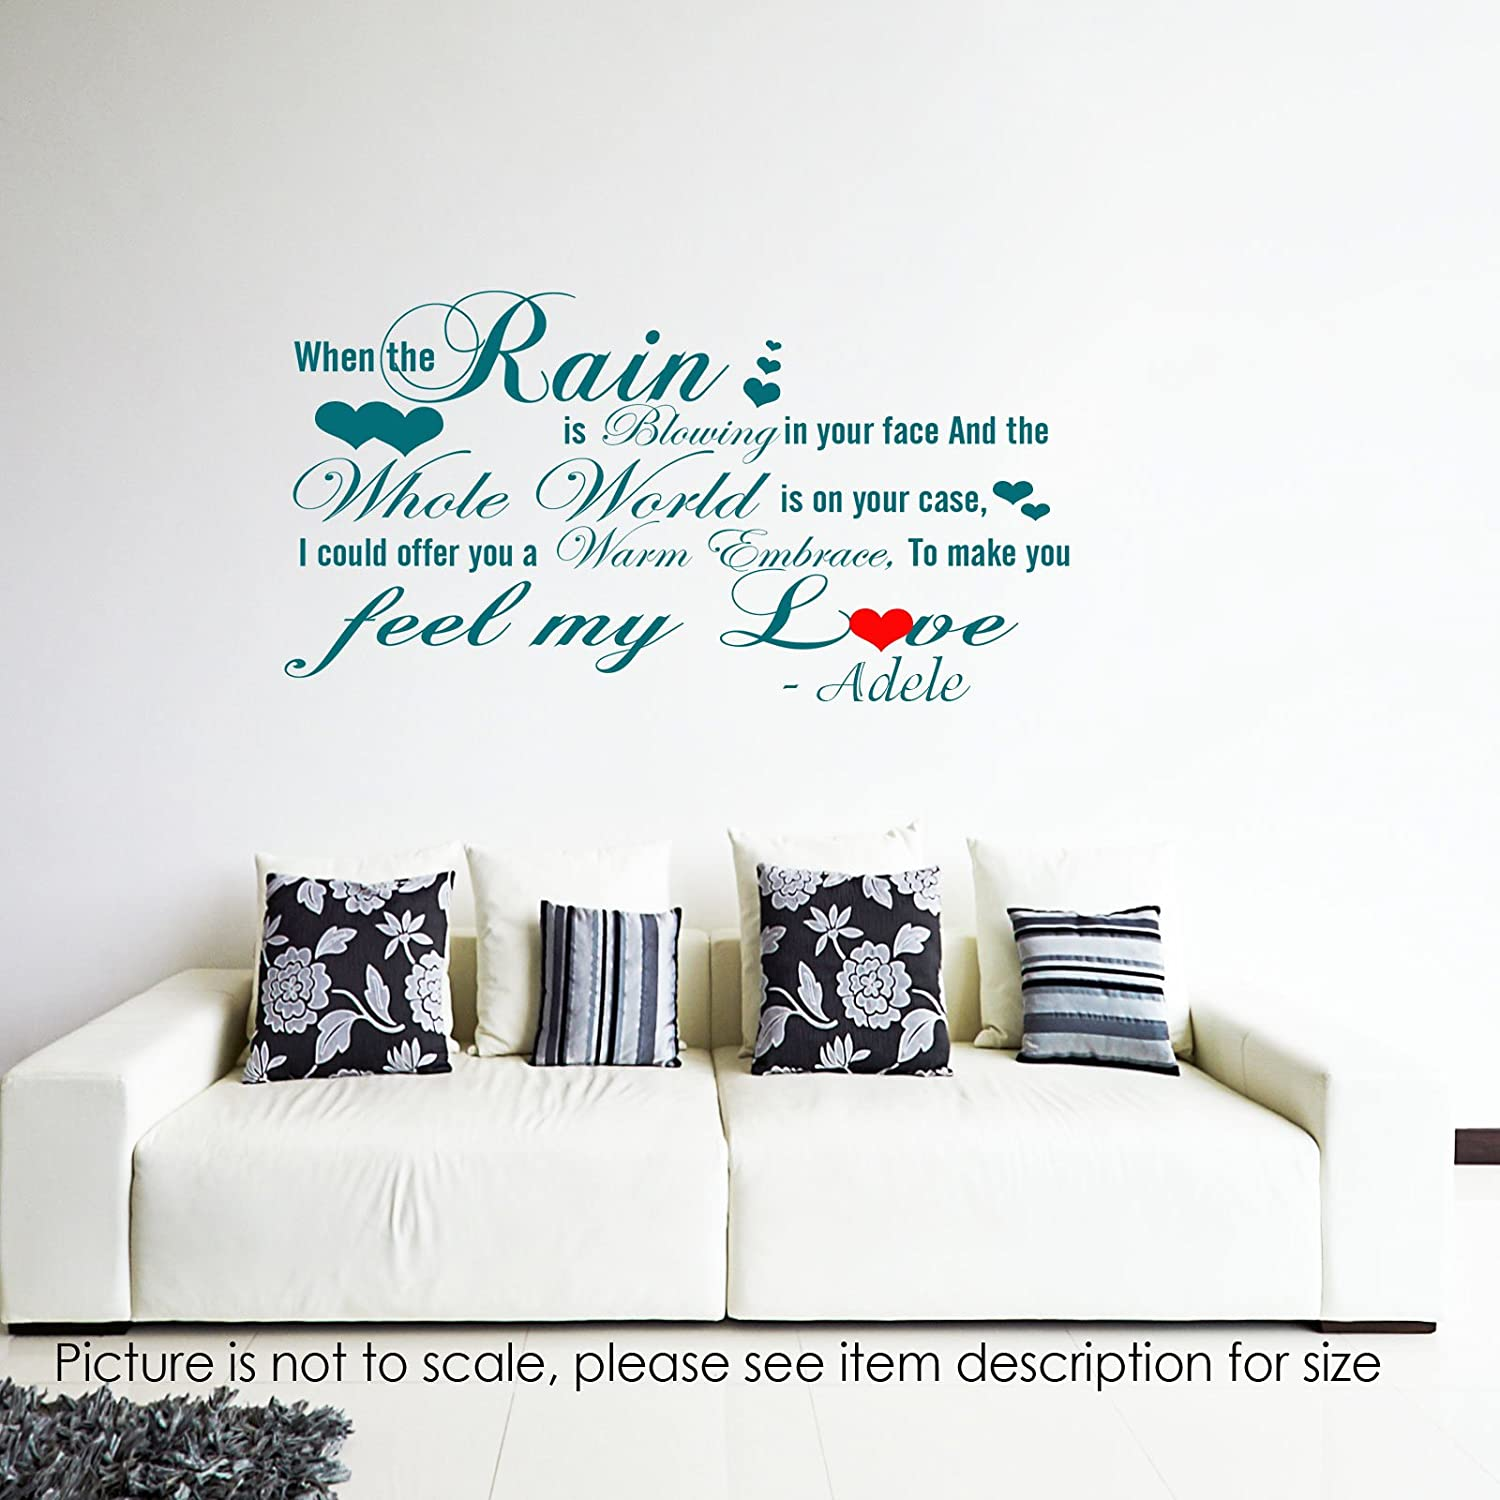 Adele quote wall stickers celebrity quote wall art decal removable vinyl home decor when the rain is blowing in your face adele stickers celebrity quote